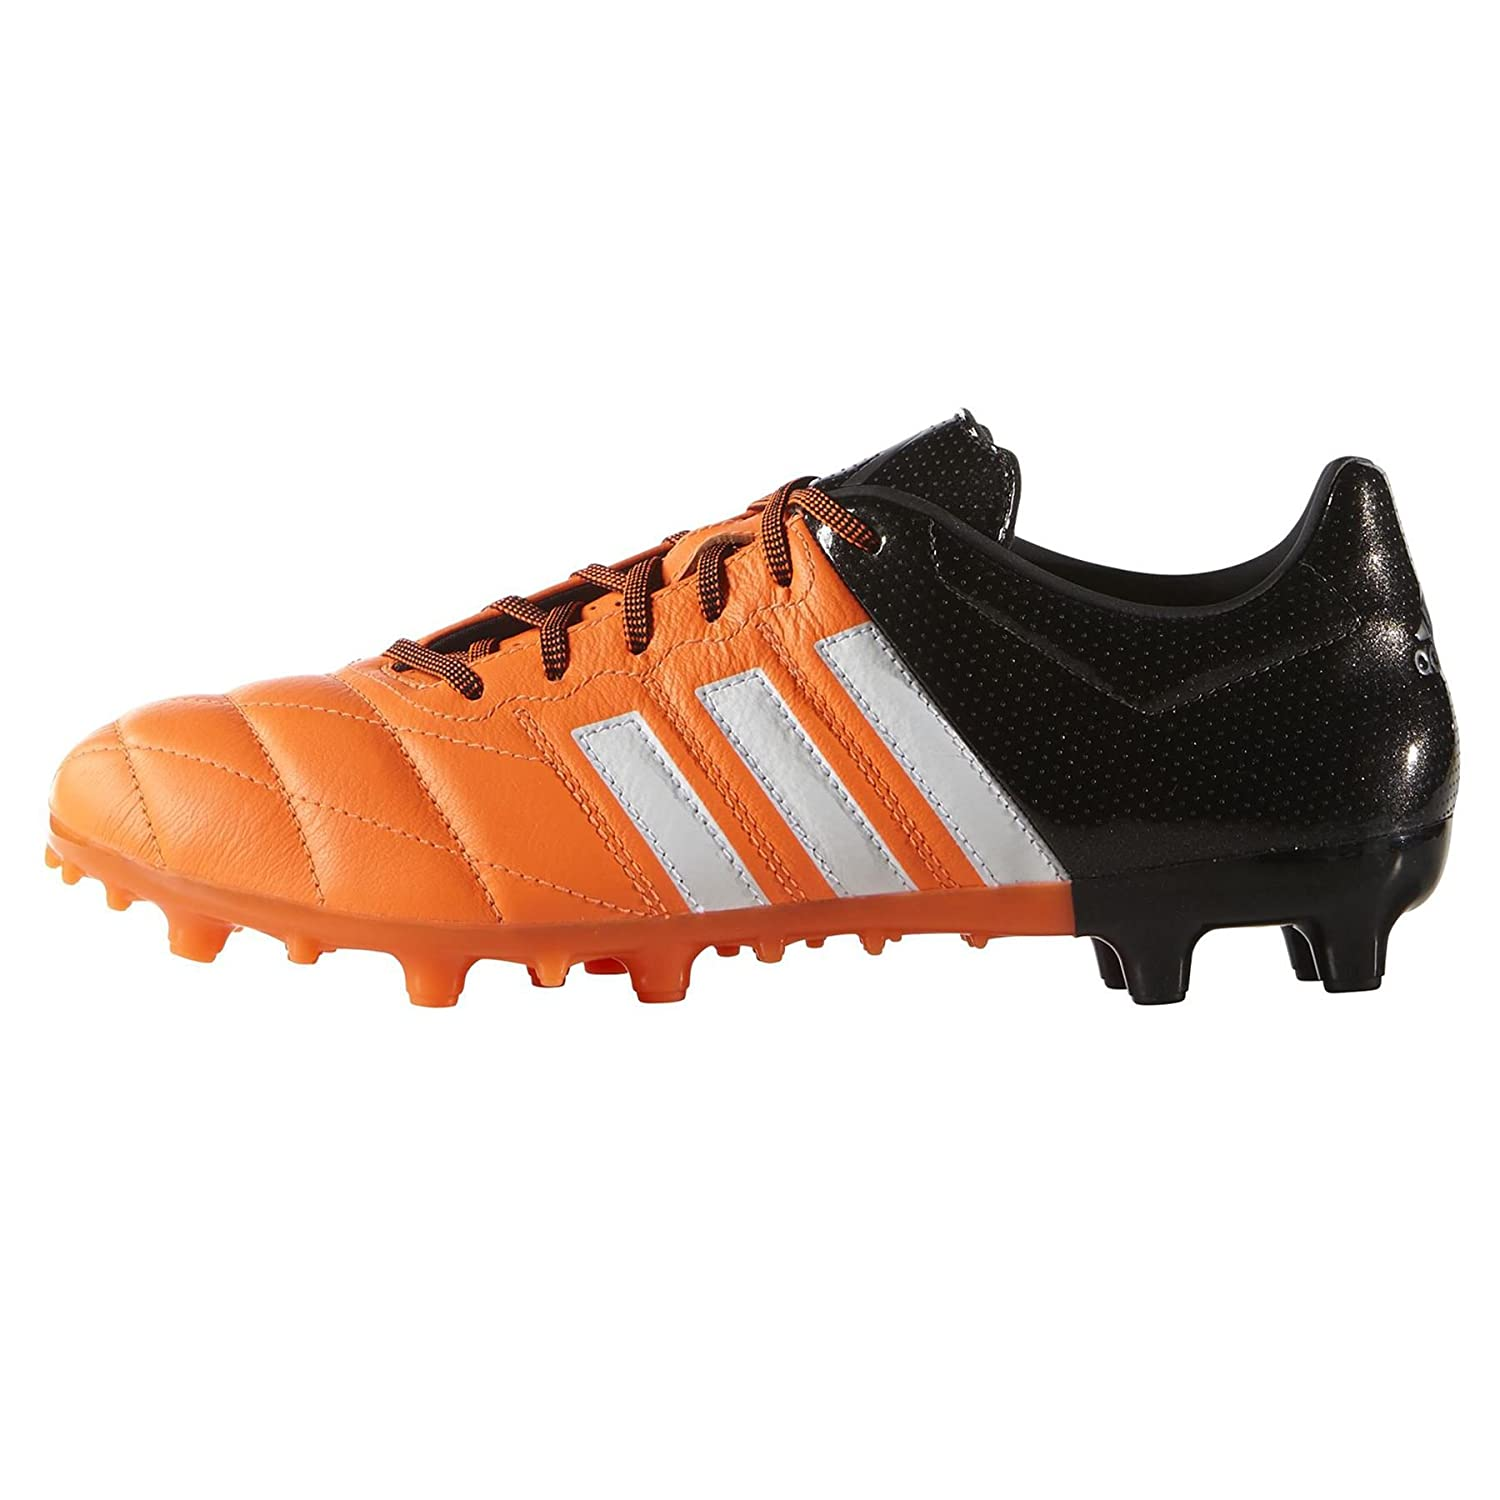 d314a0275 adidas Men s s Ace 15.3 Fg ag Leather Football Boots  Amazon.co.uk  Shoes    Bags